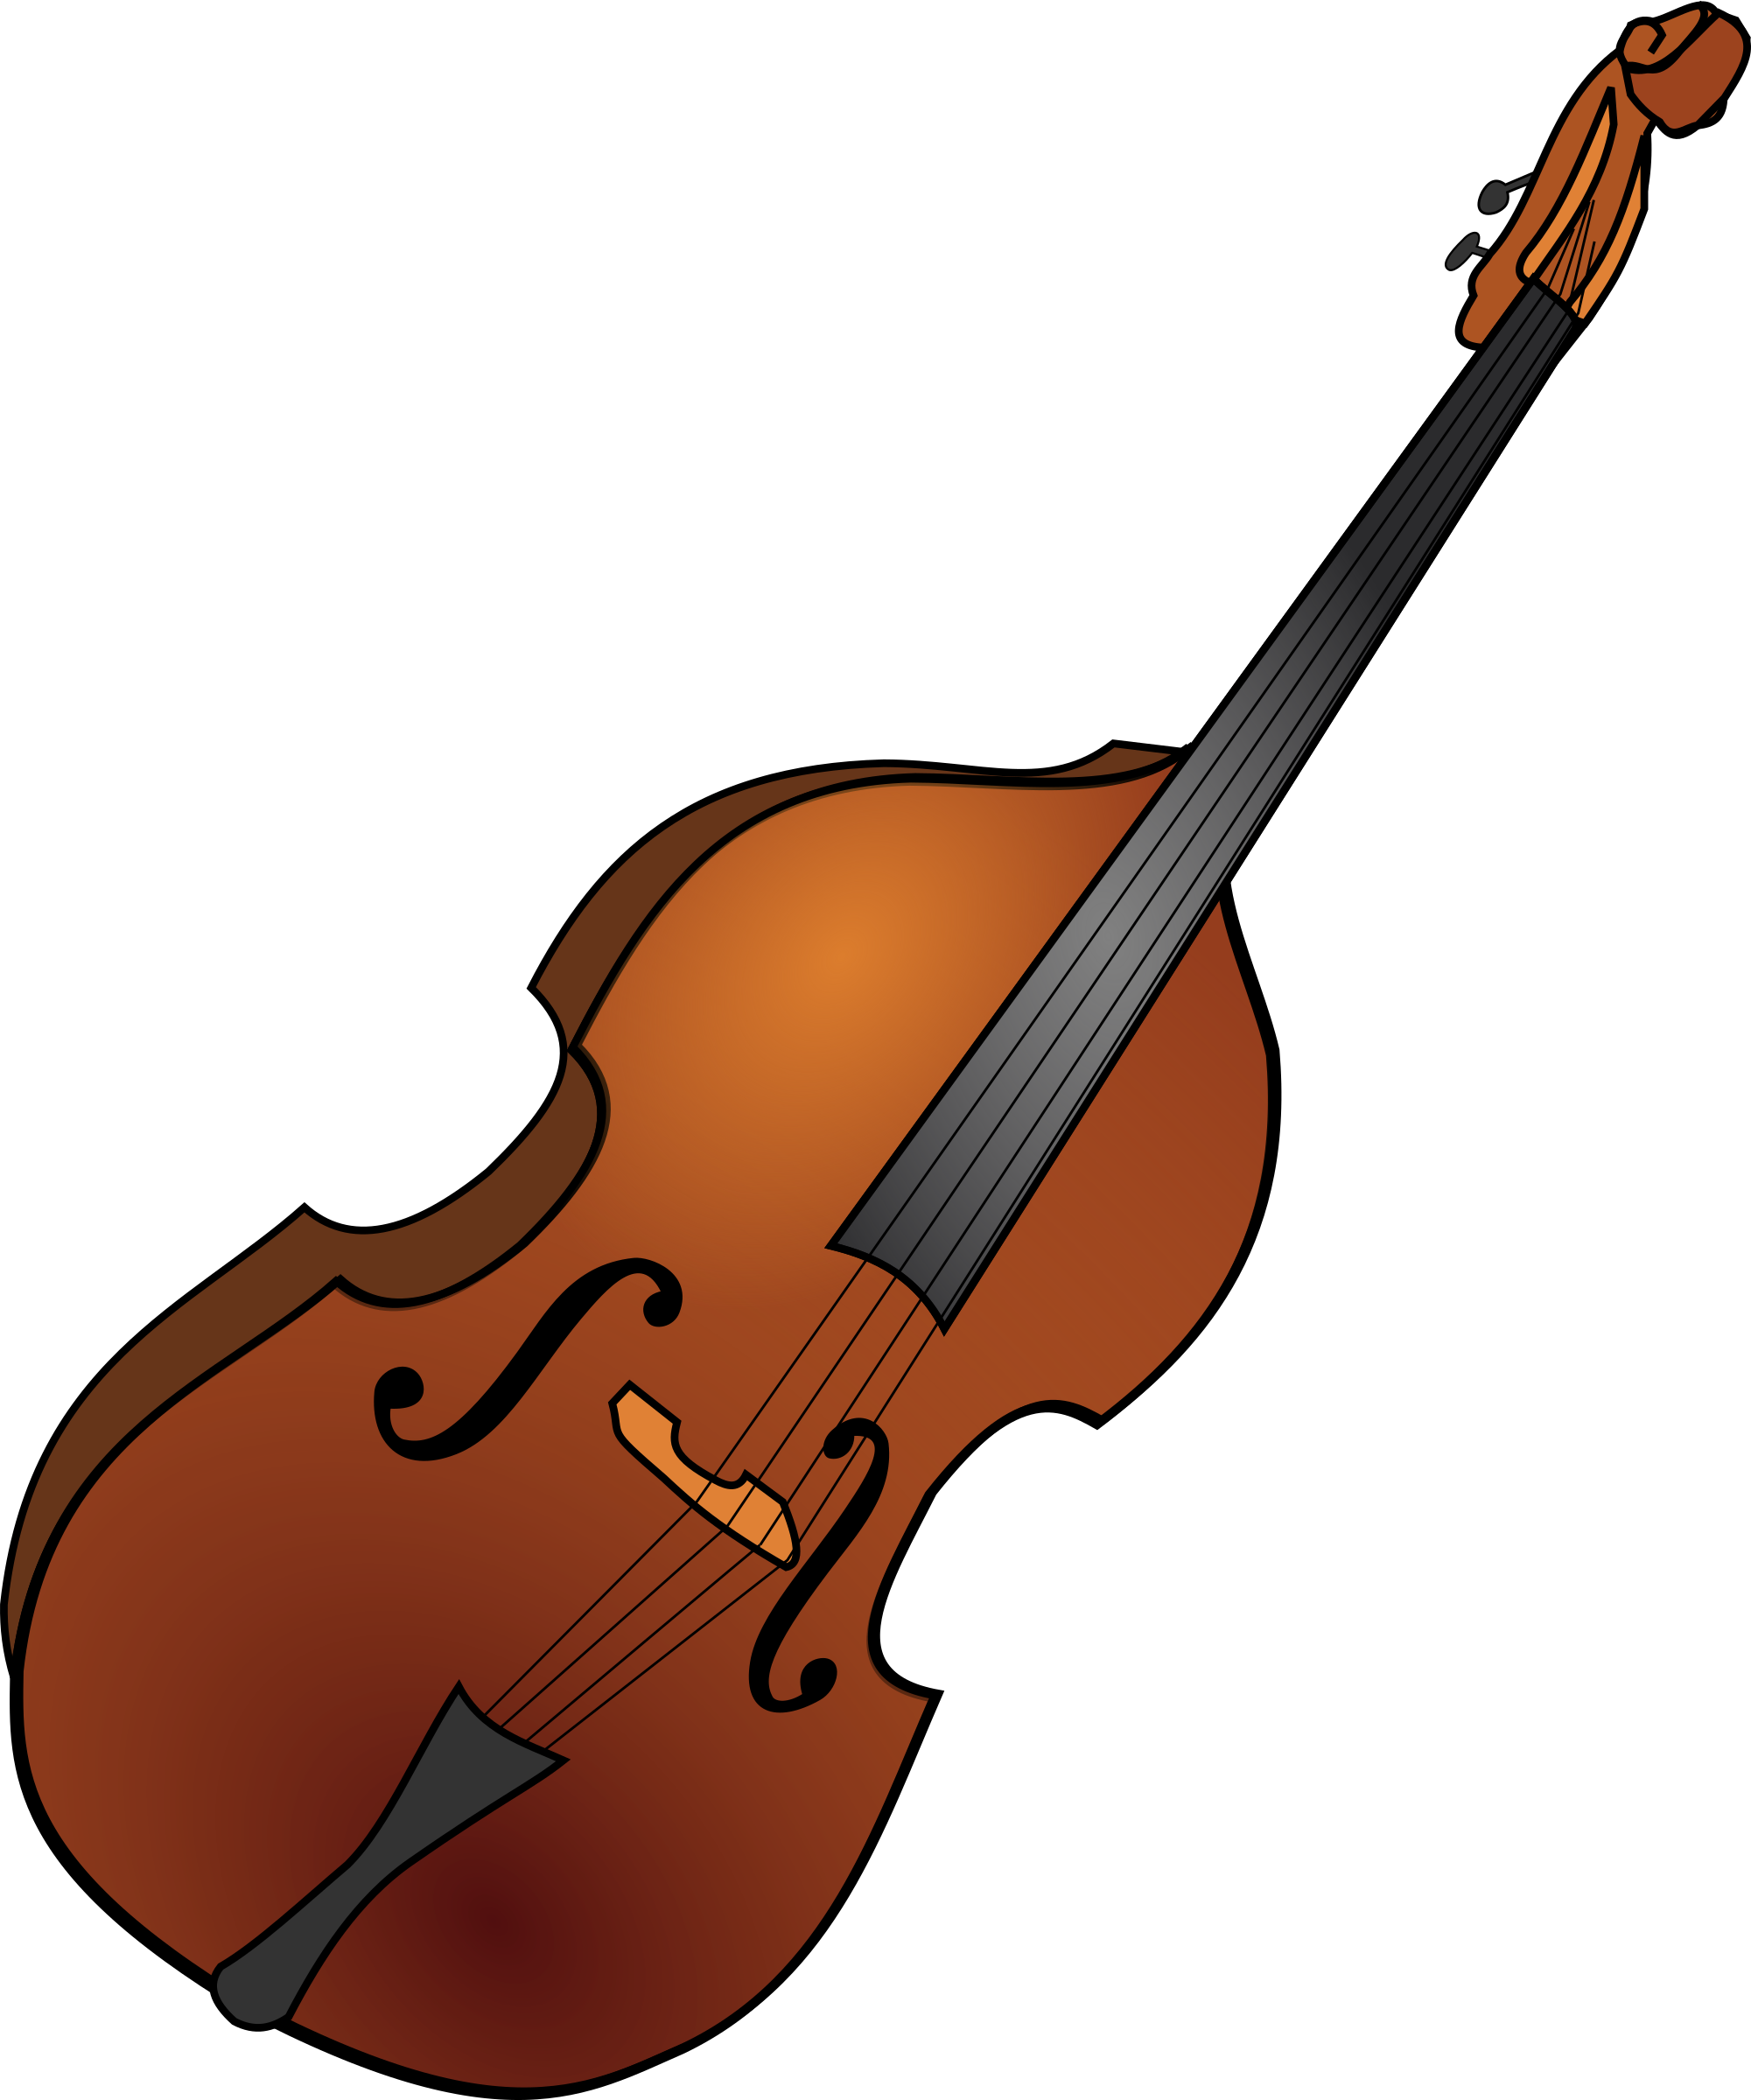 Double bass big image. Guitar clipart cartoon